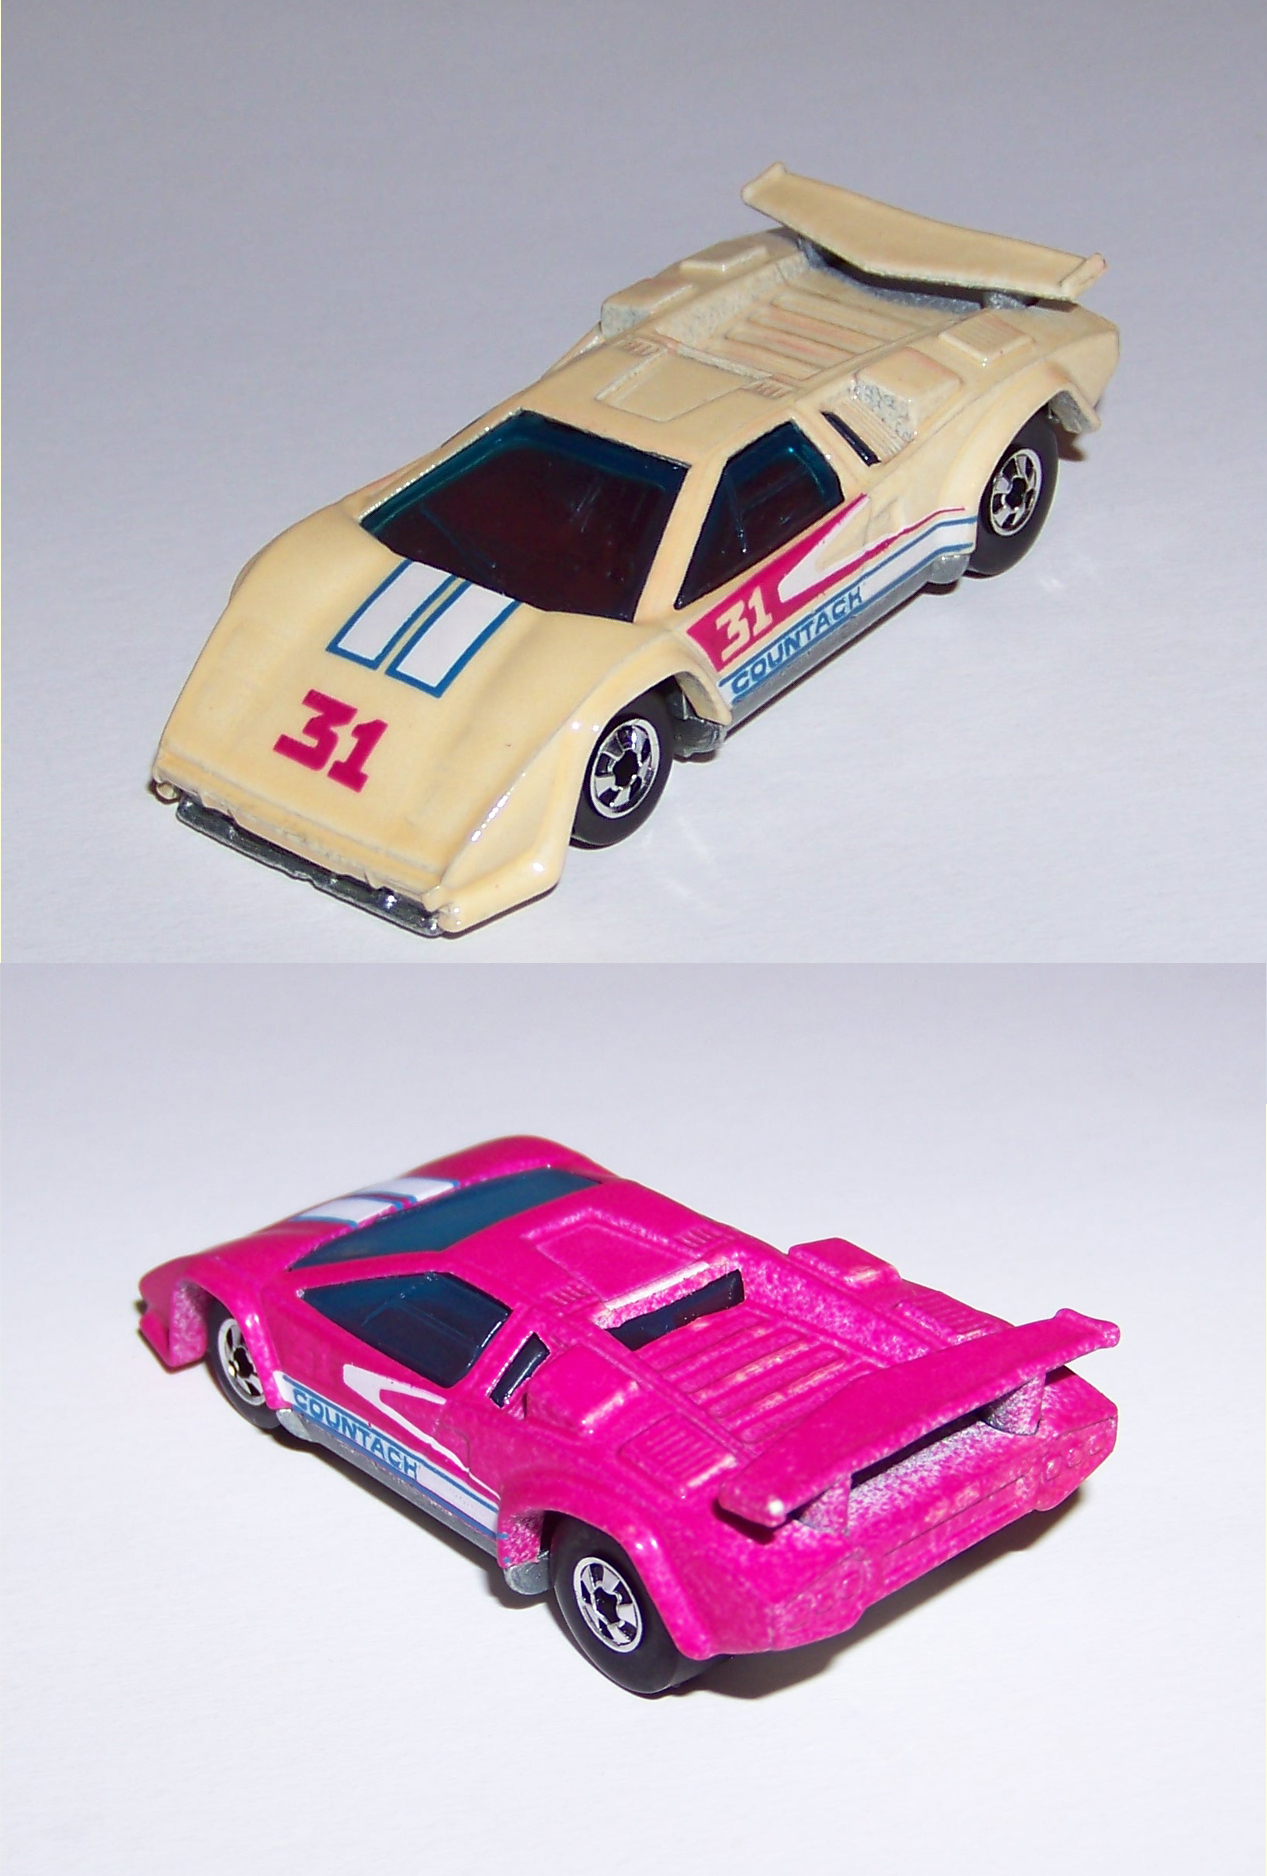 latest?cb=20100321044419 Mesmerizing Hot Wheels Speed Machines Lamborghini Countach Cars Trend